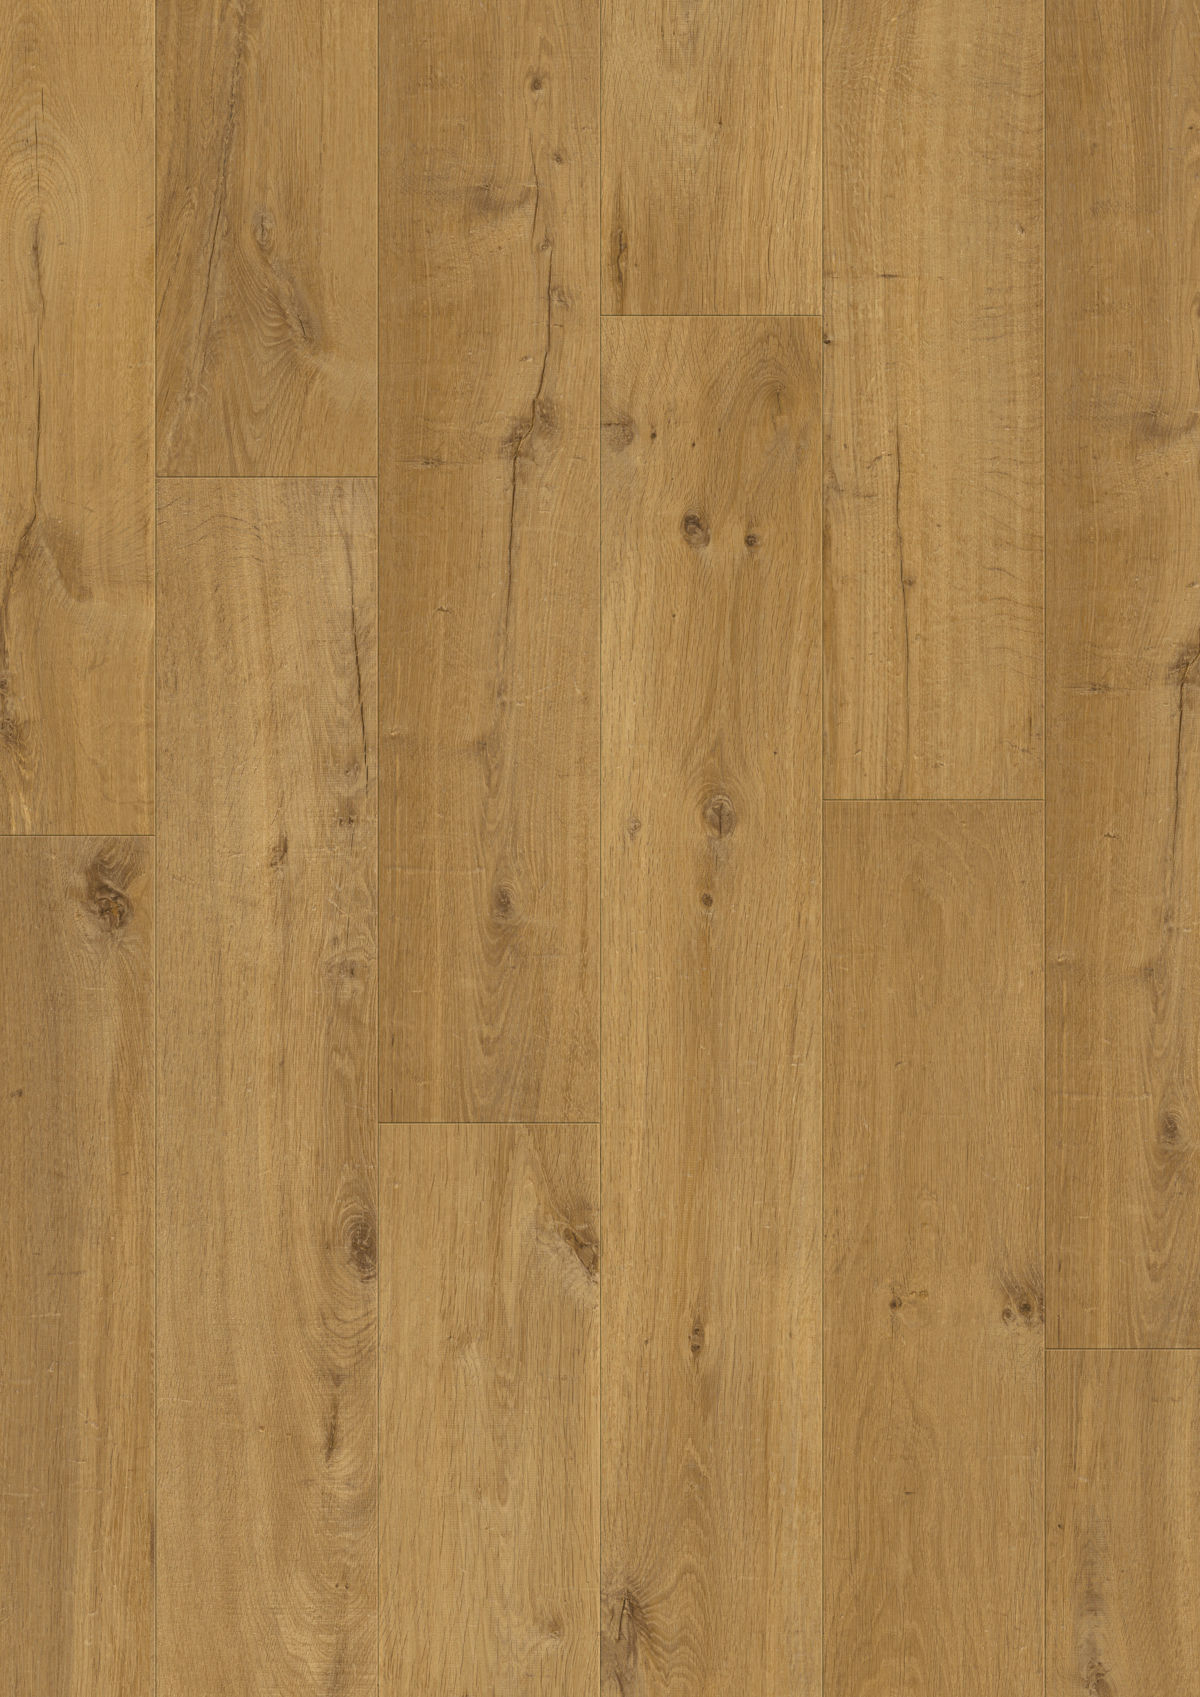 pin flooring floor our why review chose hardwood pergo on home a laminate over and how we